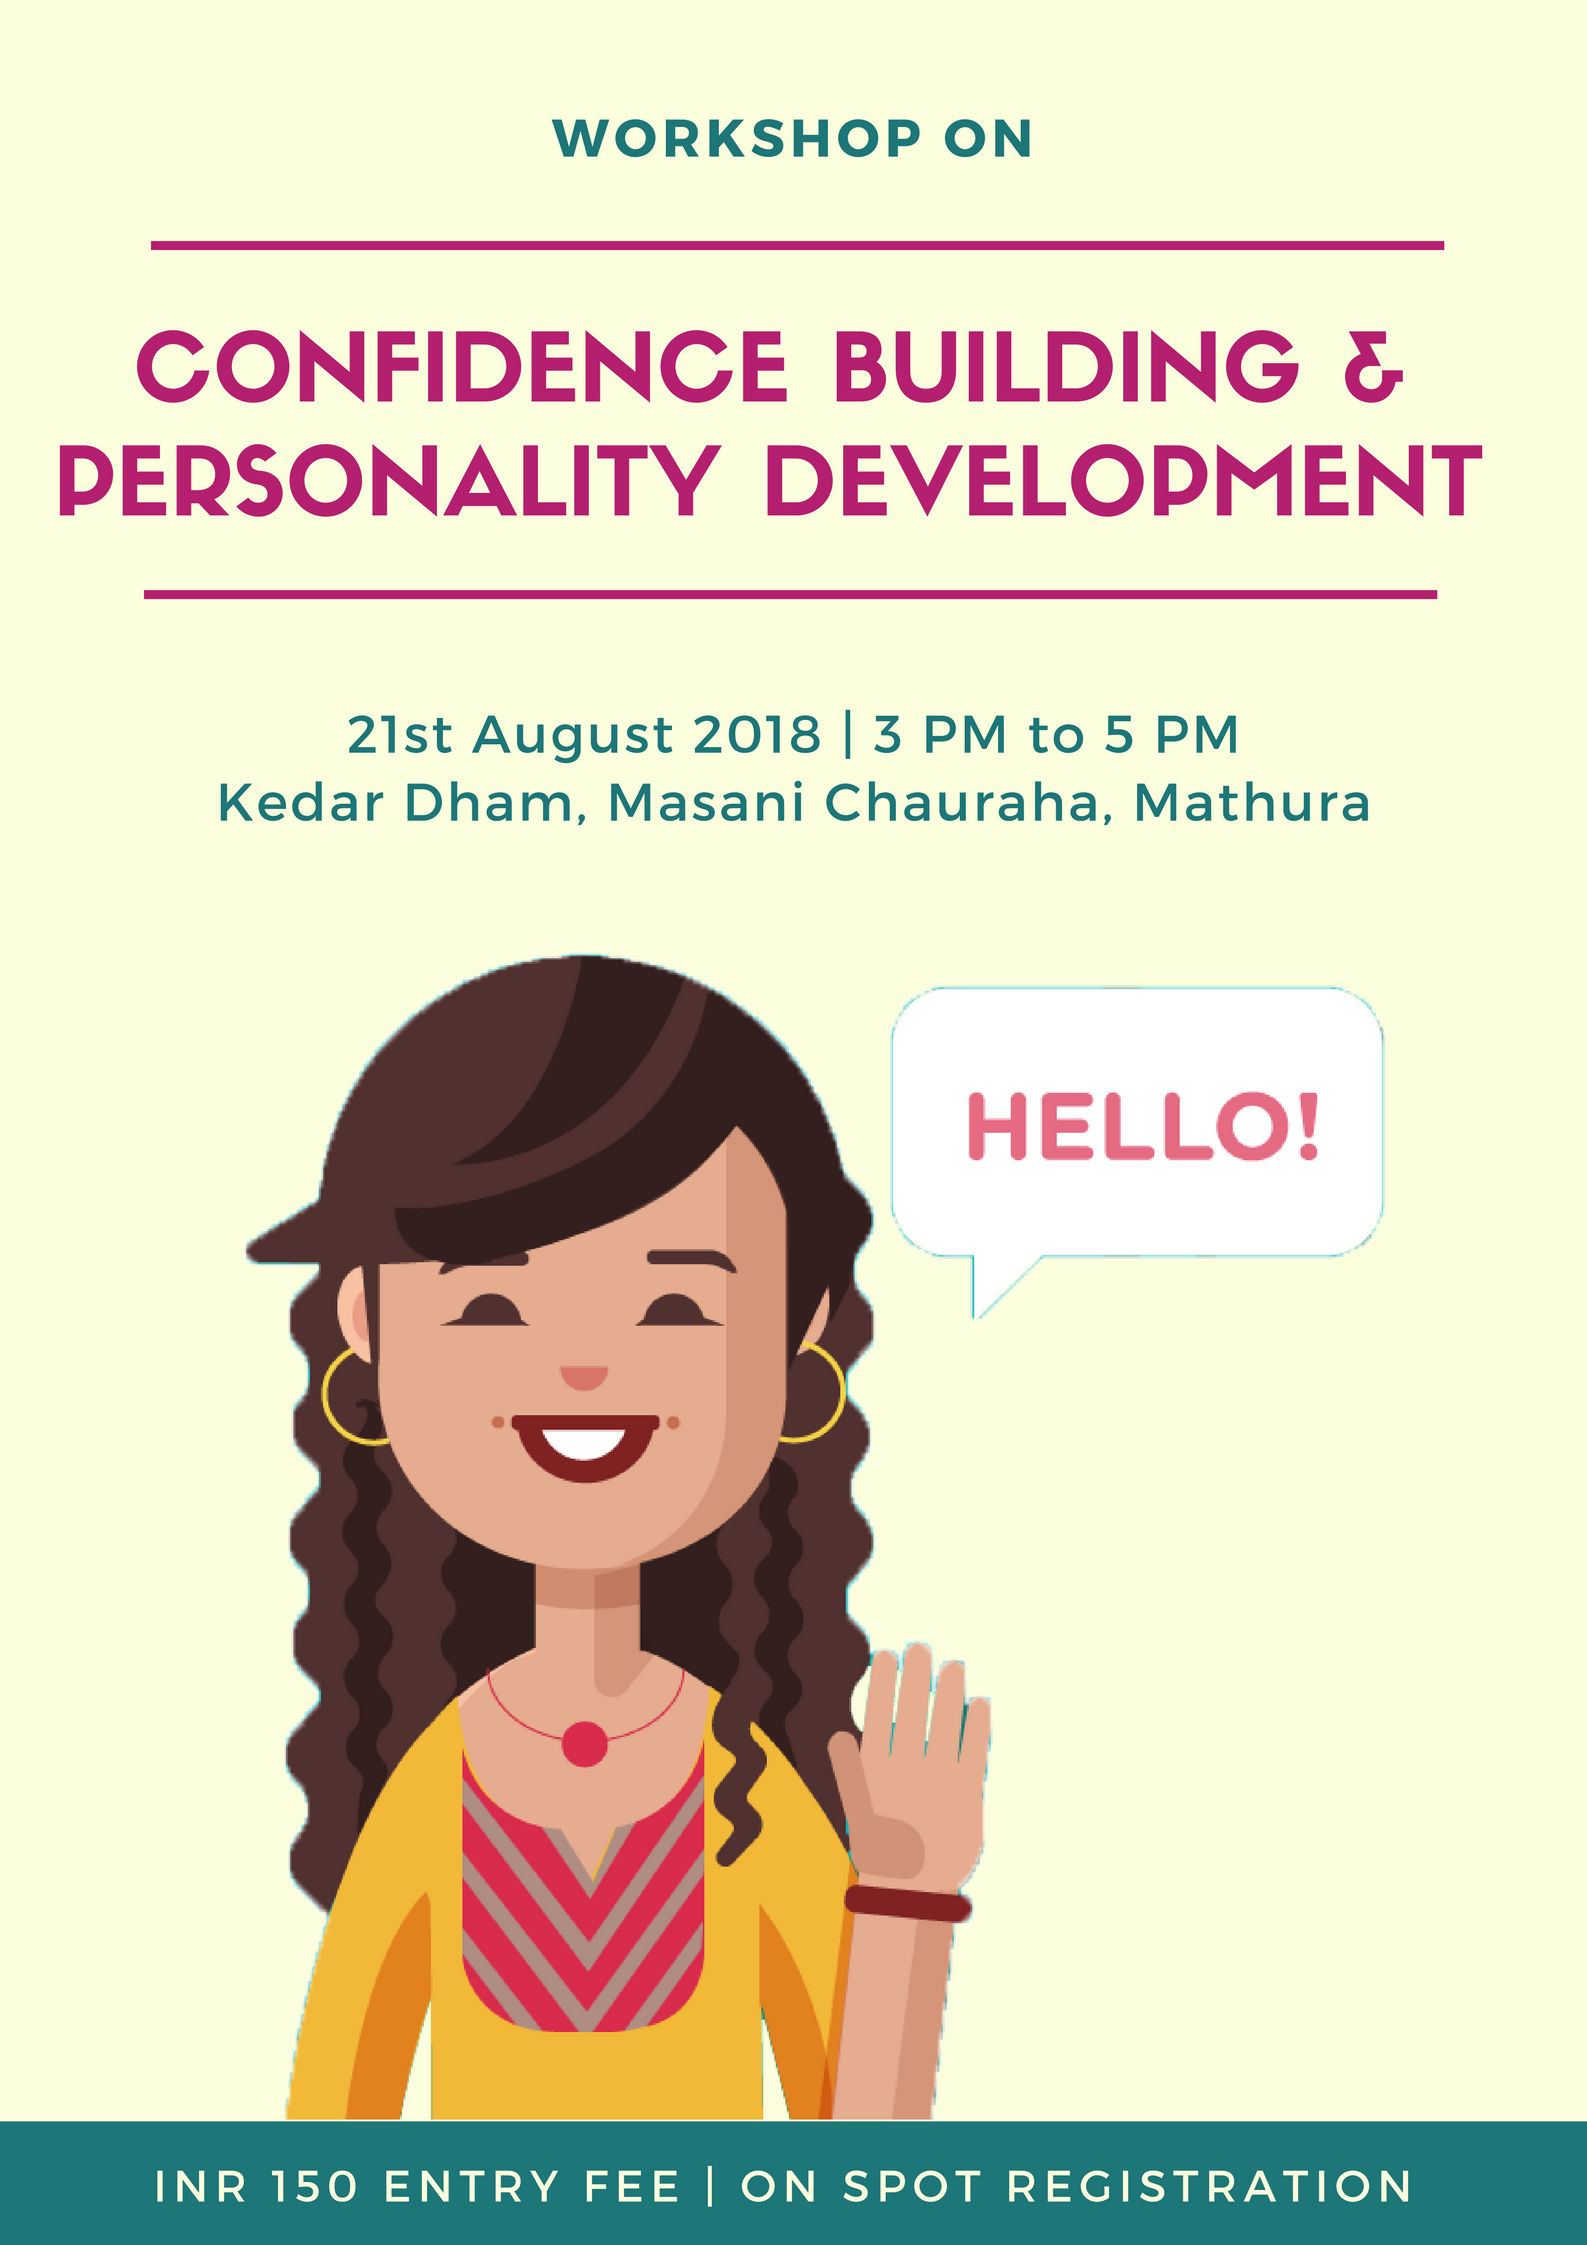 Confidence Building & Personality Development Workshop Tickets by Pawani  Khandelwal, 21 Aug, 2018, Mathura Event